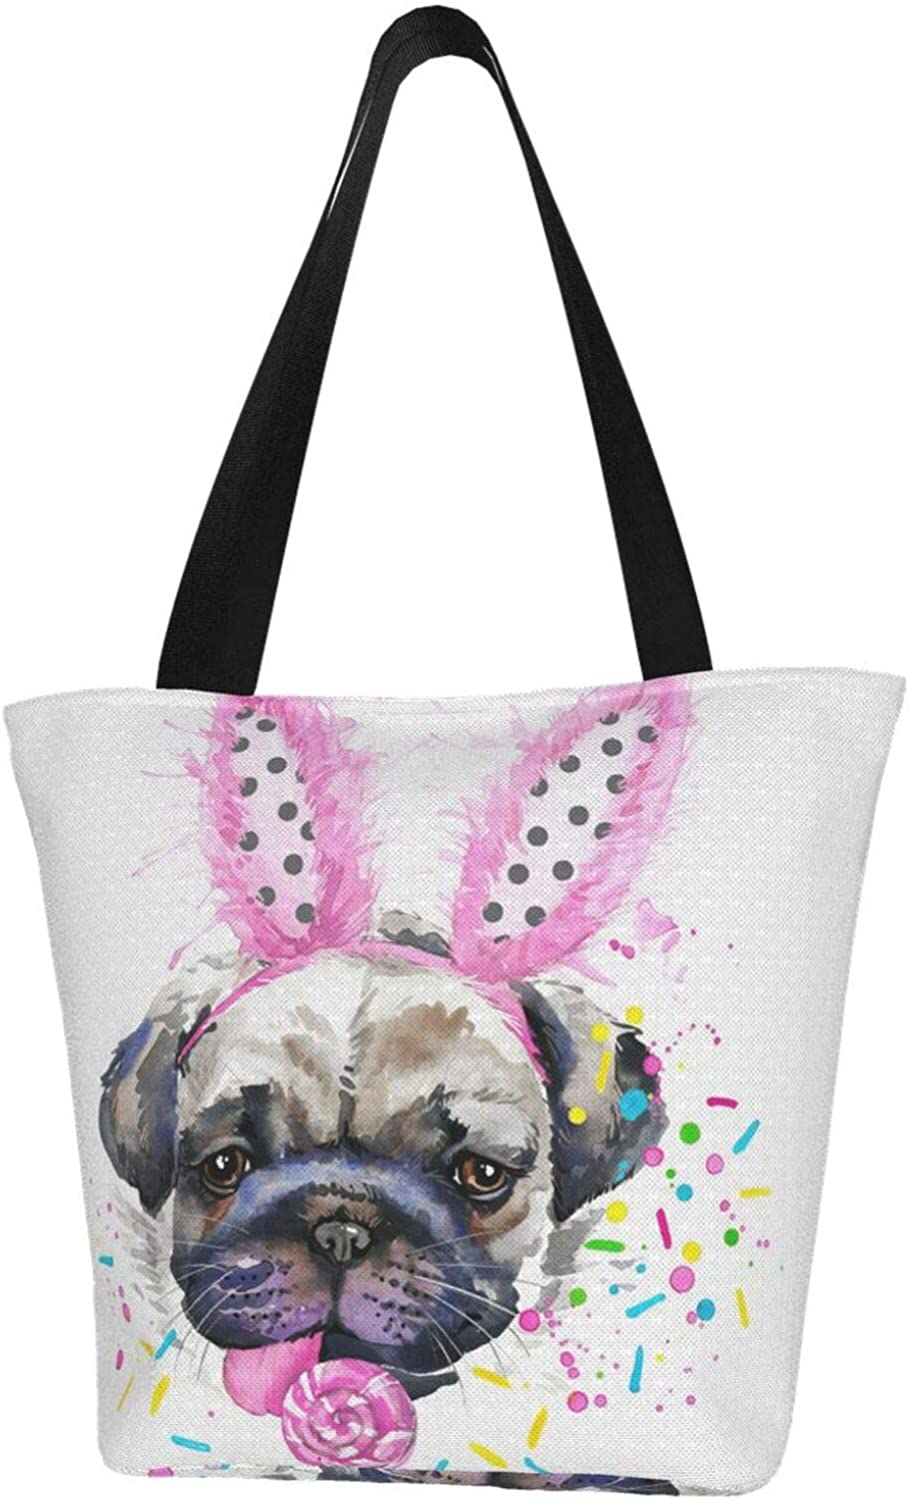 Cute Pug Dog Candy Pink Sweet Pink Bunny Ears Easter Themed Printed Women Canvas Handbag Zipper Shoulder Bag Work Booksbag Tote Purse Leisure Hobo Bag For Shopping